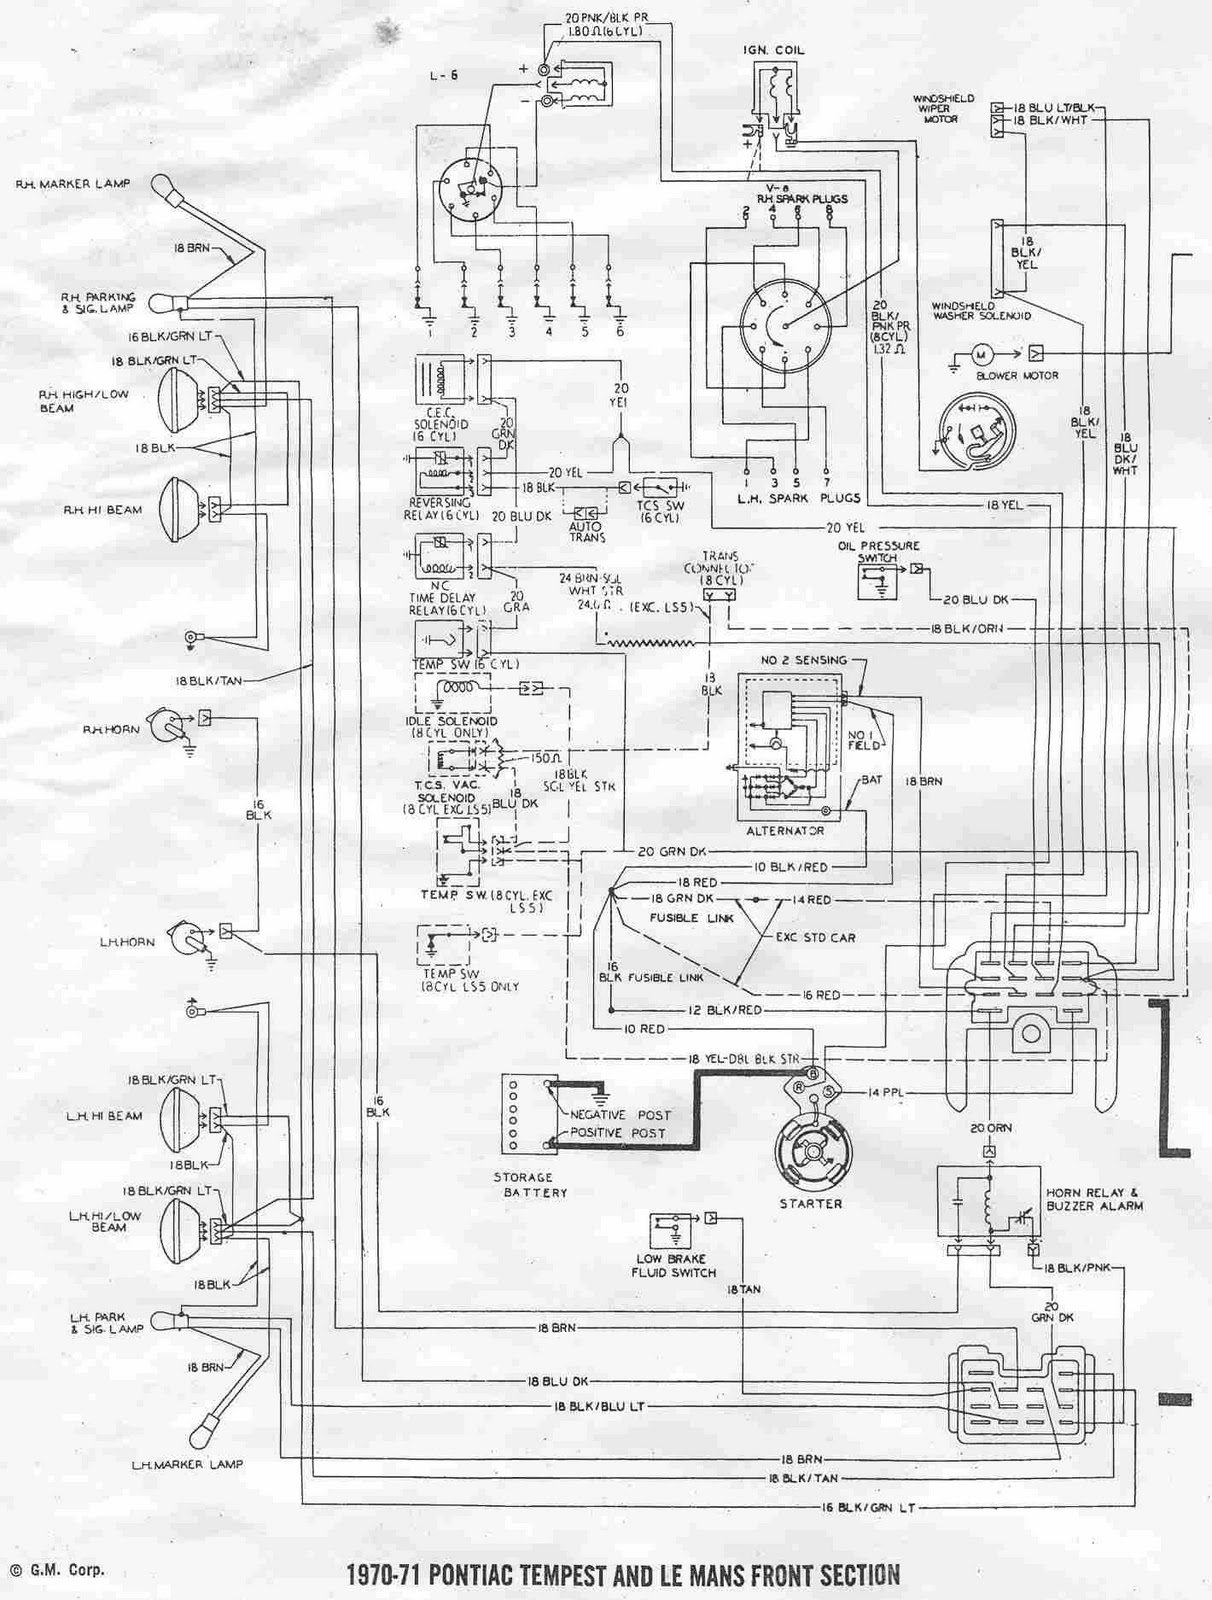 ford cougar wiring diagrams electrical wire nut 1971 Mach 1 Wiring Diagram  1971 ford mustang mach 1 wiring diagram 1971 Mustang Wiring Diagram Oil Sensor 1971 mustang wiring diagram